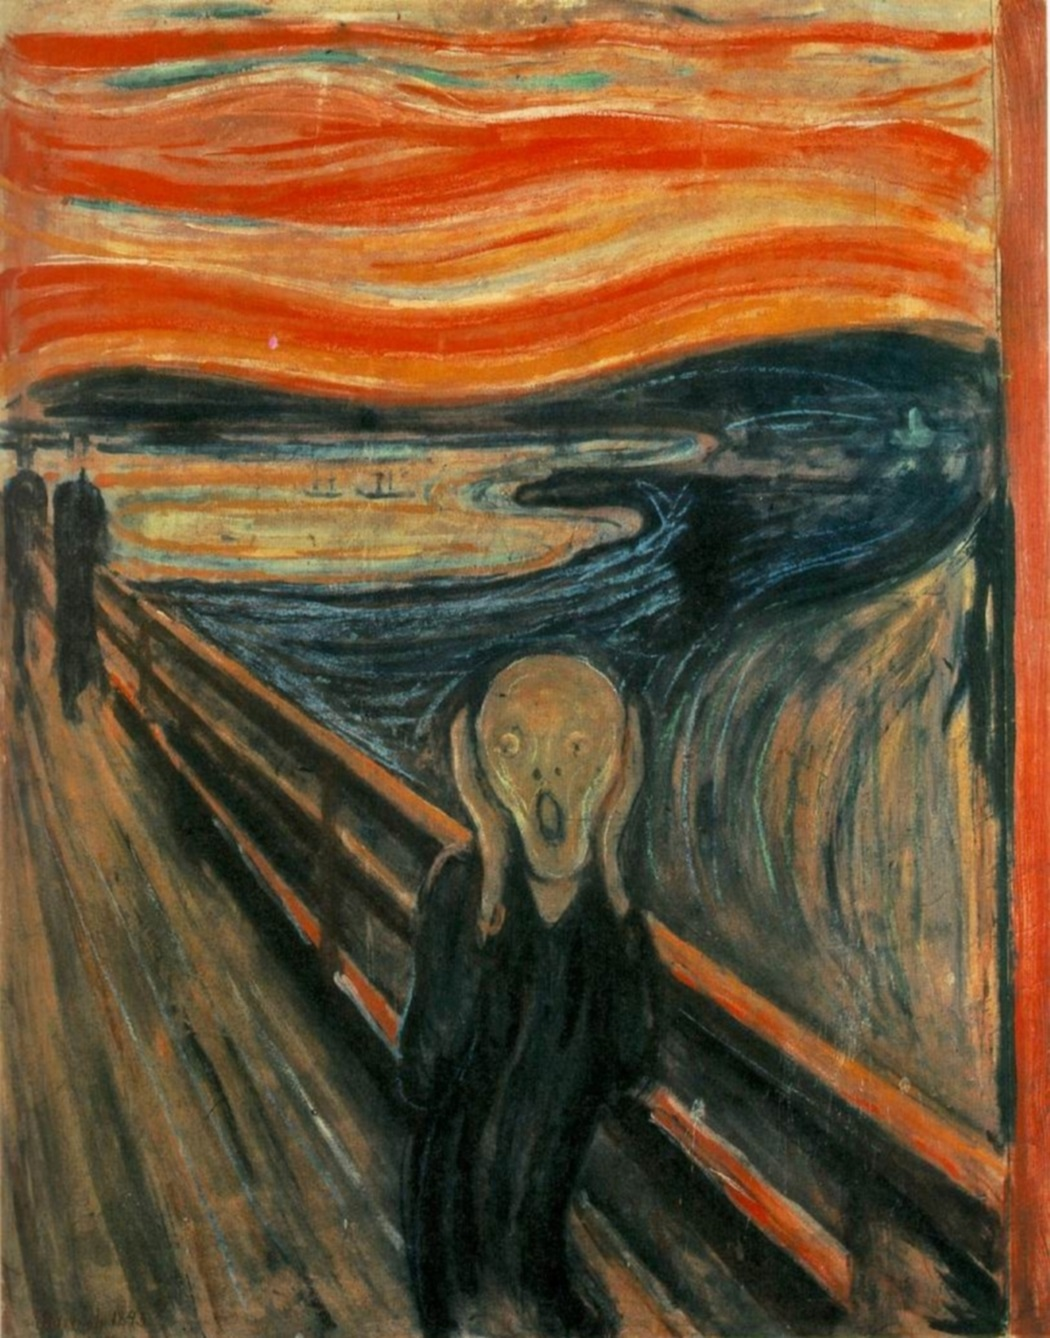 35 Most Famous Paintings of All Times - WiseToast for Famous Paintings By Famous Artists Easy  545xkb